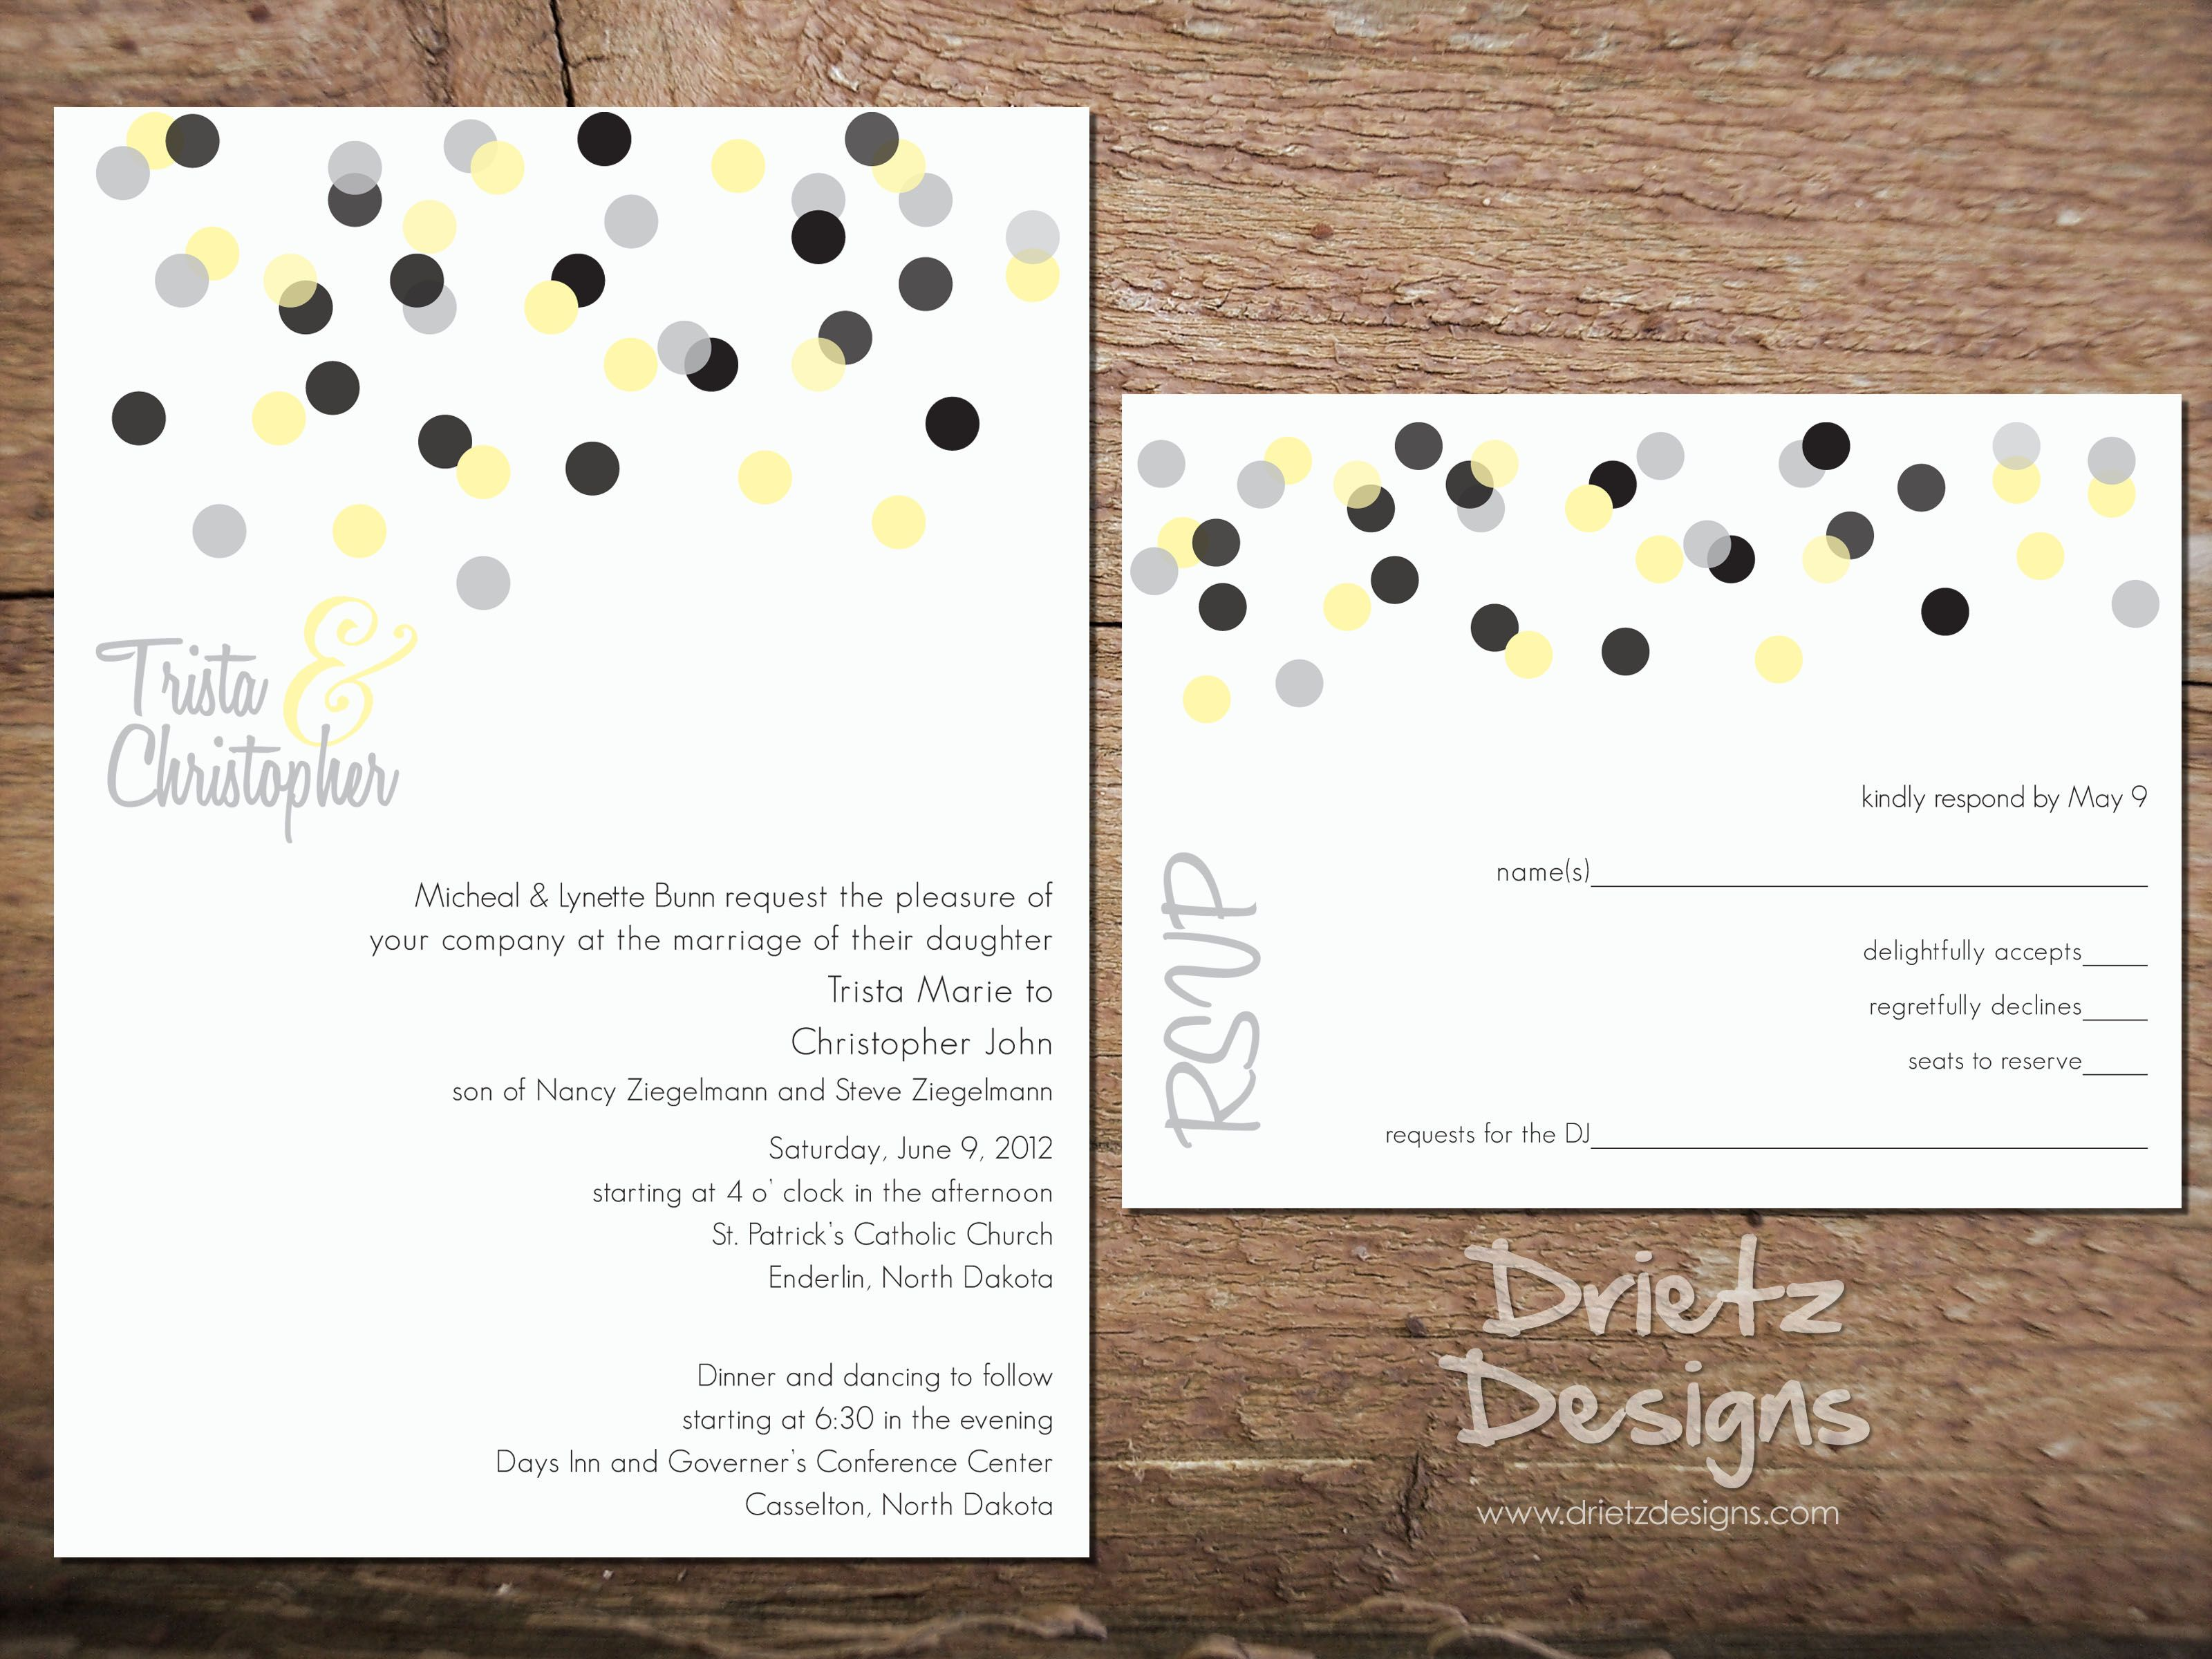 Confetti Wedding Invitation : can be custom made for your wedding ...